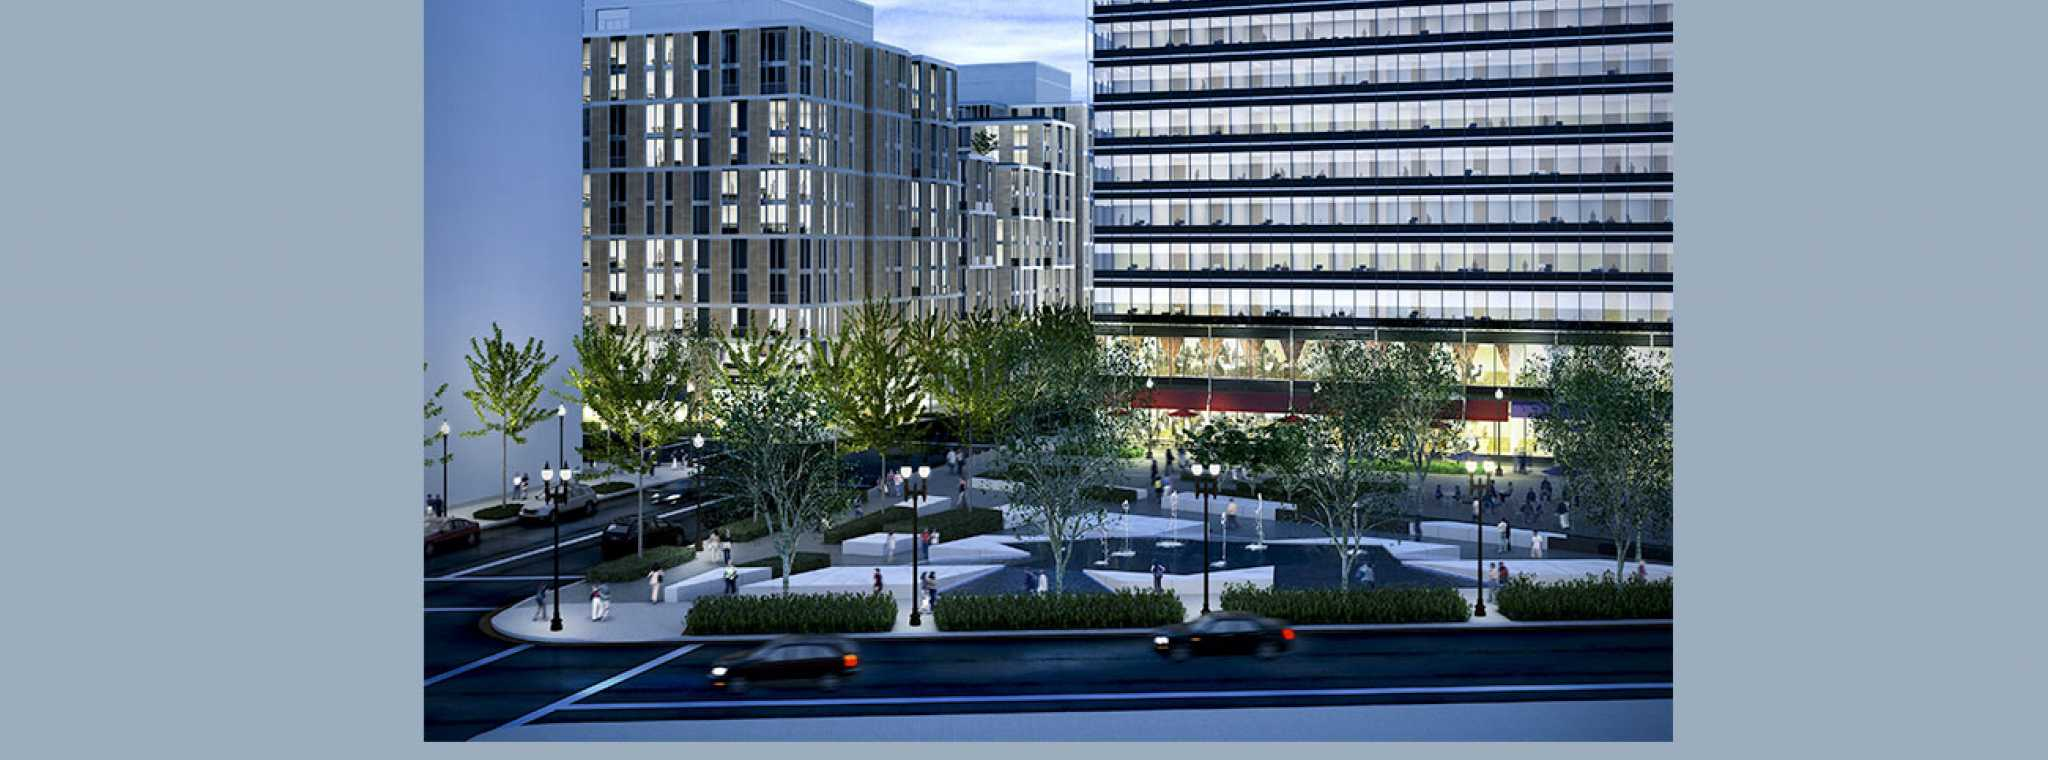 Citycenter Dc Ccdc Sk Amp A Structural Engineering Consulting